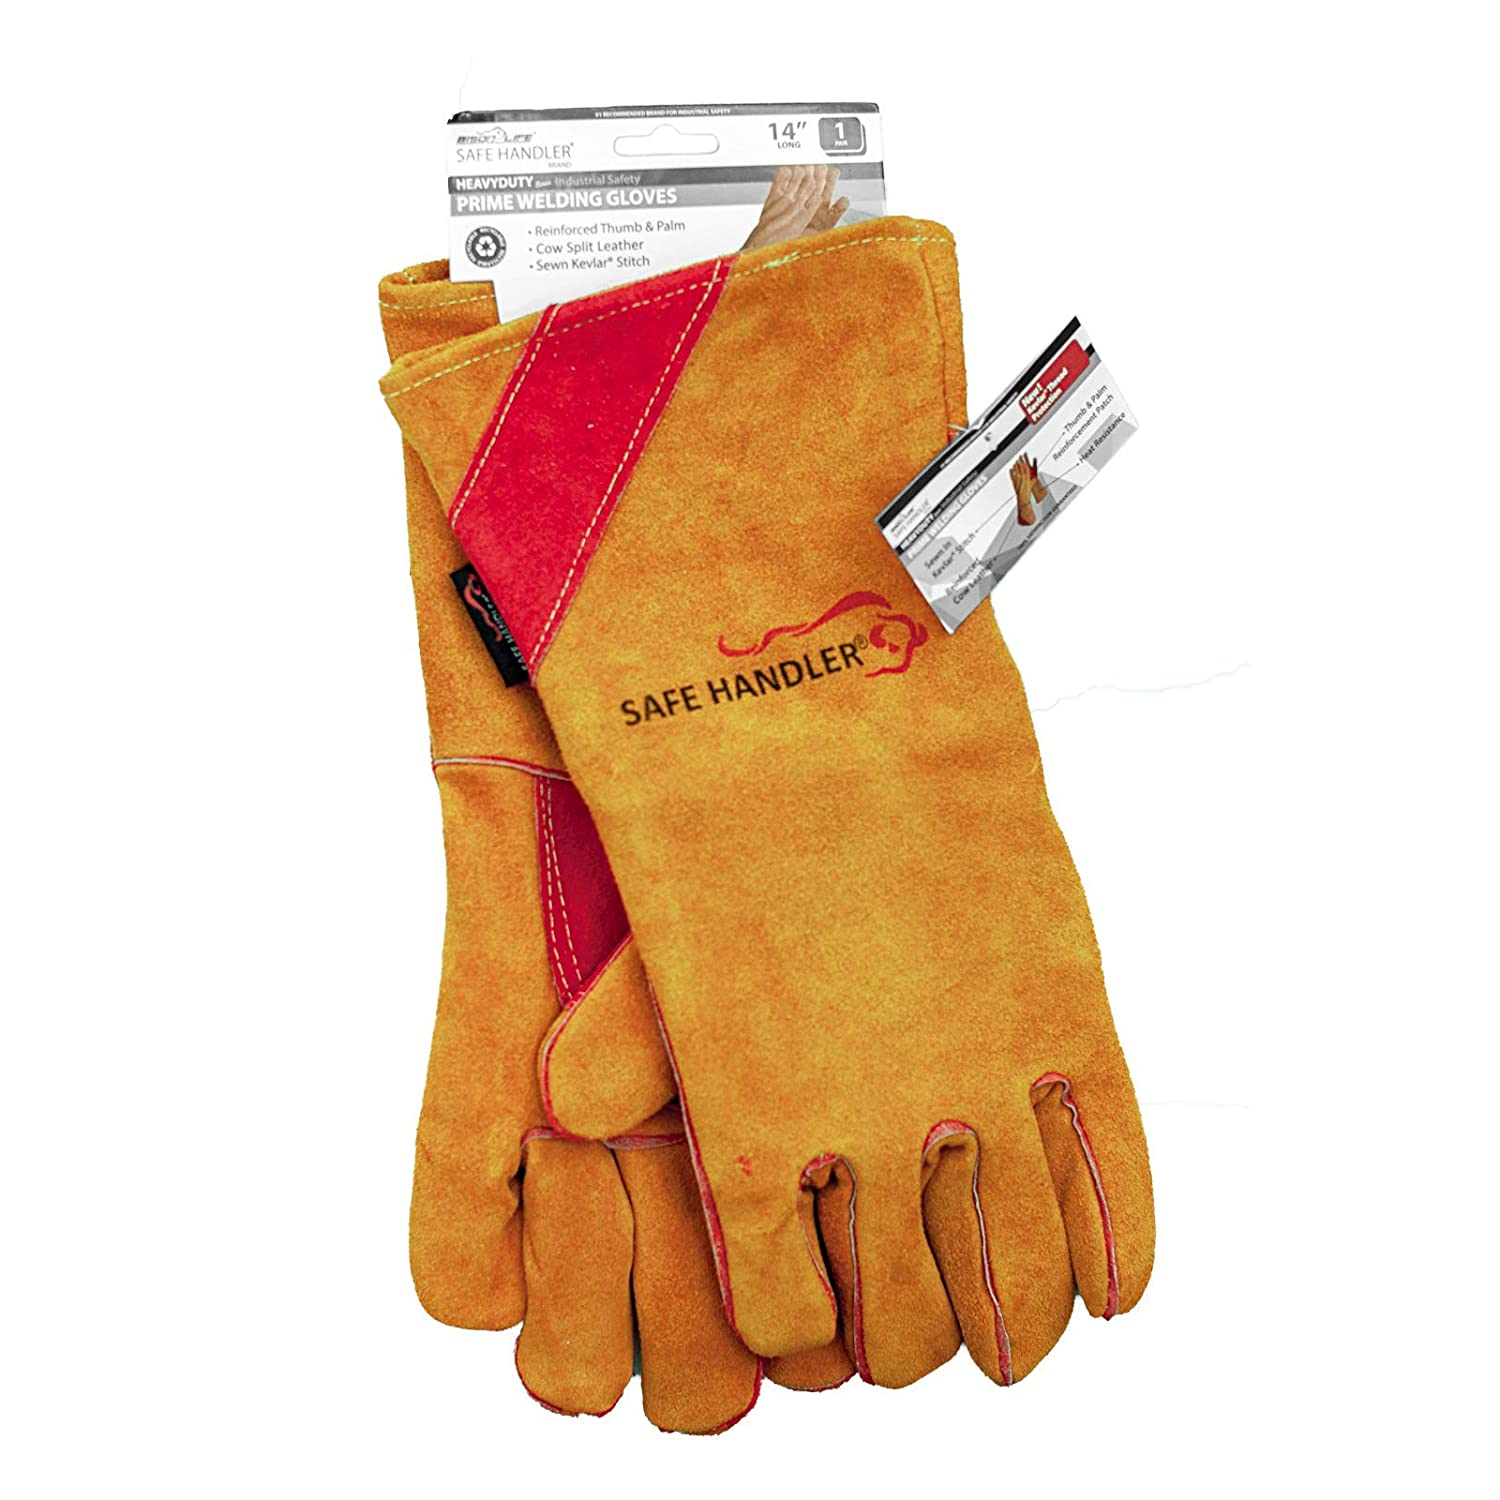 Reinforced Thumb and Palm SAFE HANDLER Prime Welding Gloves with Kevlar Thread Protection TIG welder Heat Resistant for oven 1 Pair Fireplace Grill BBQ Animal Handling MIG welding 16 inch